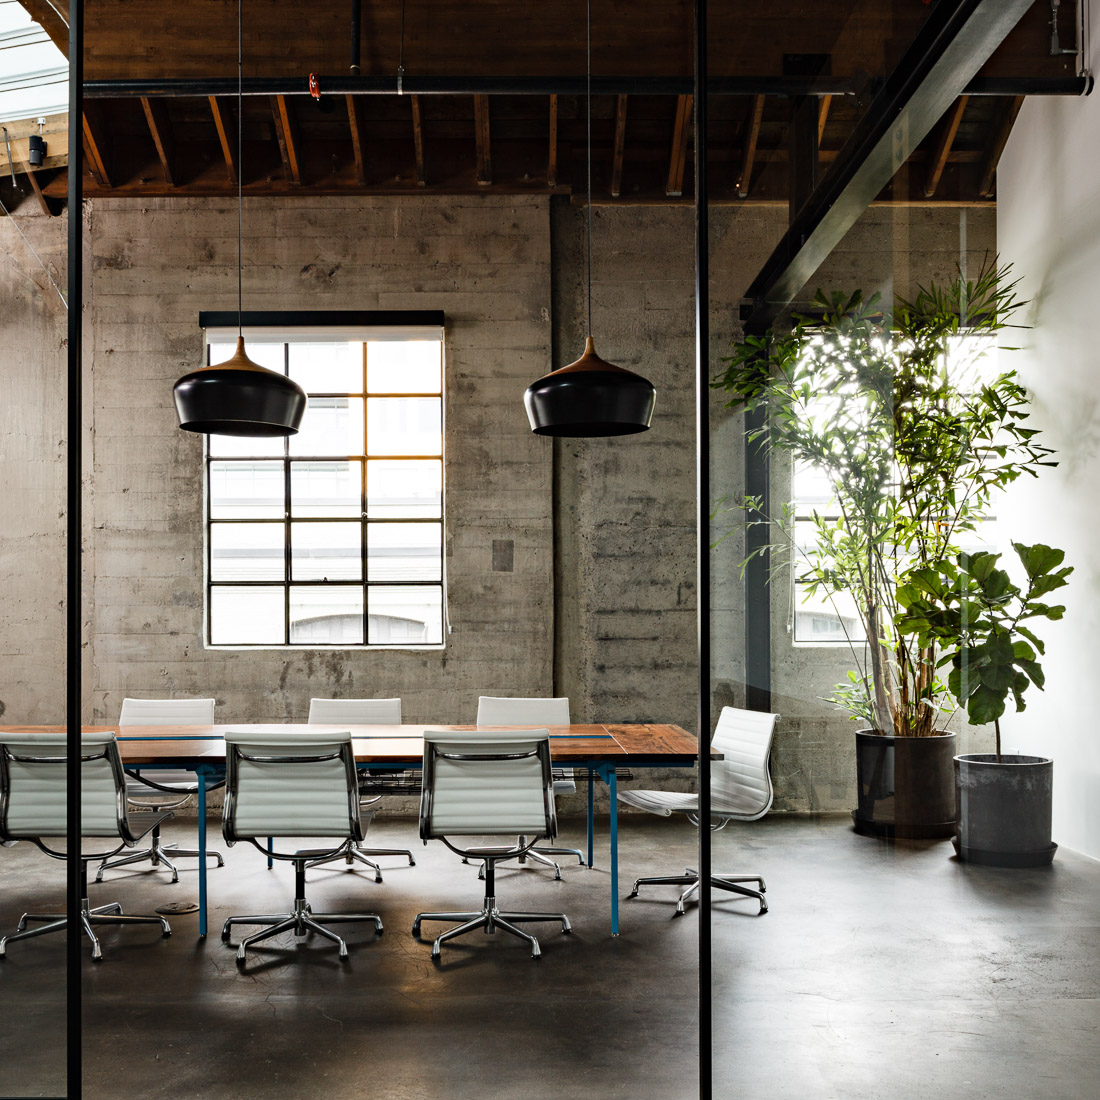 Photo of chairs in a modern setting via  Lincoln Barbour